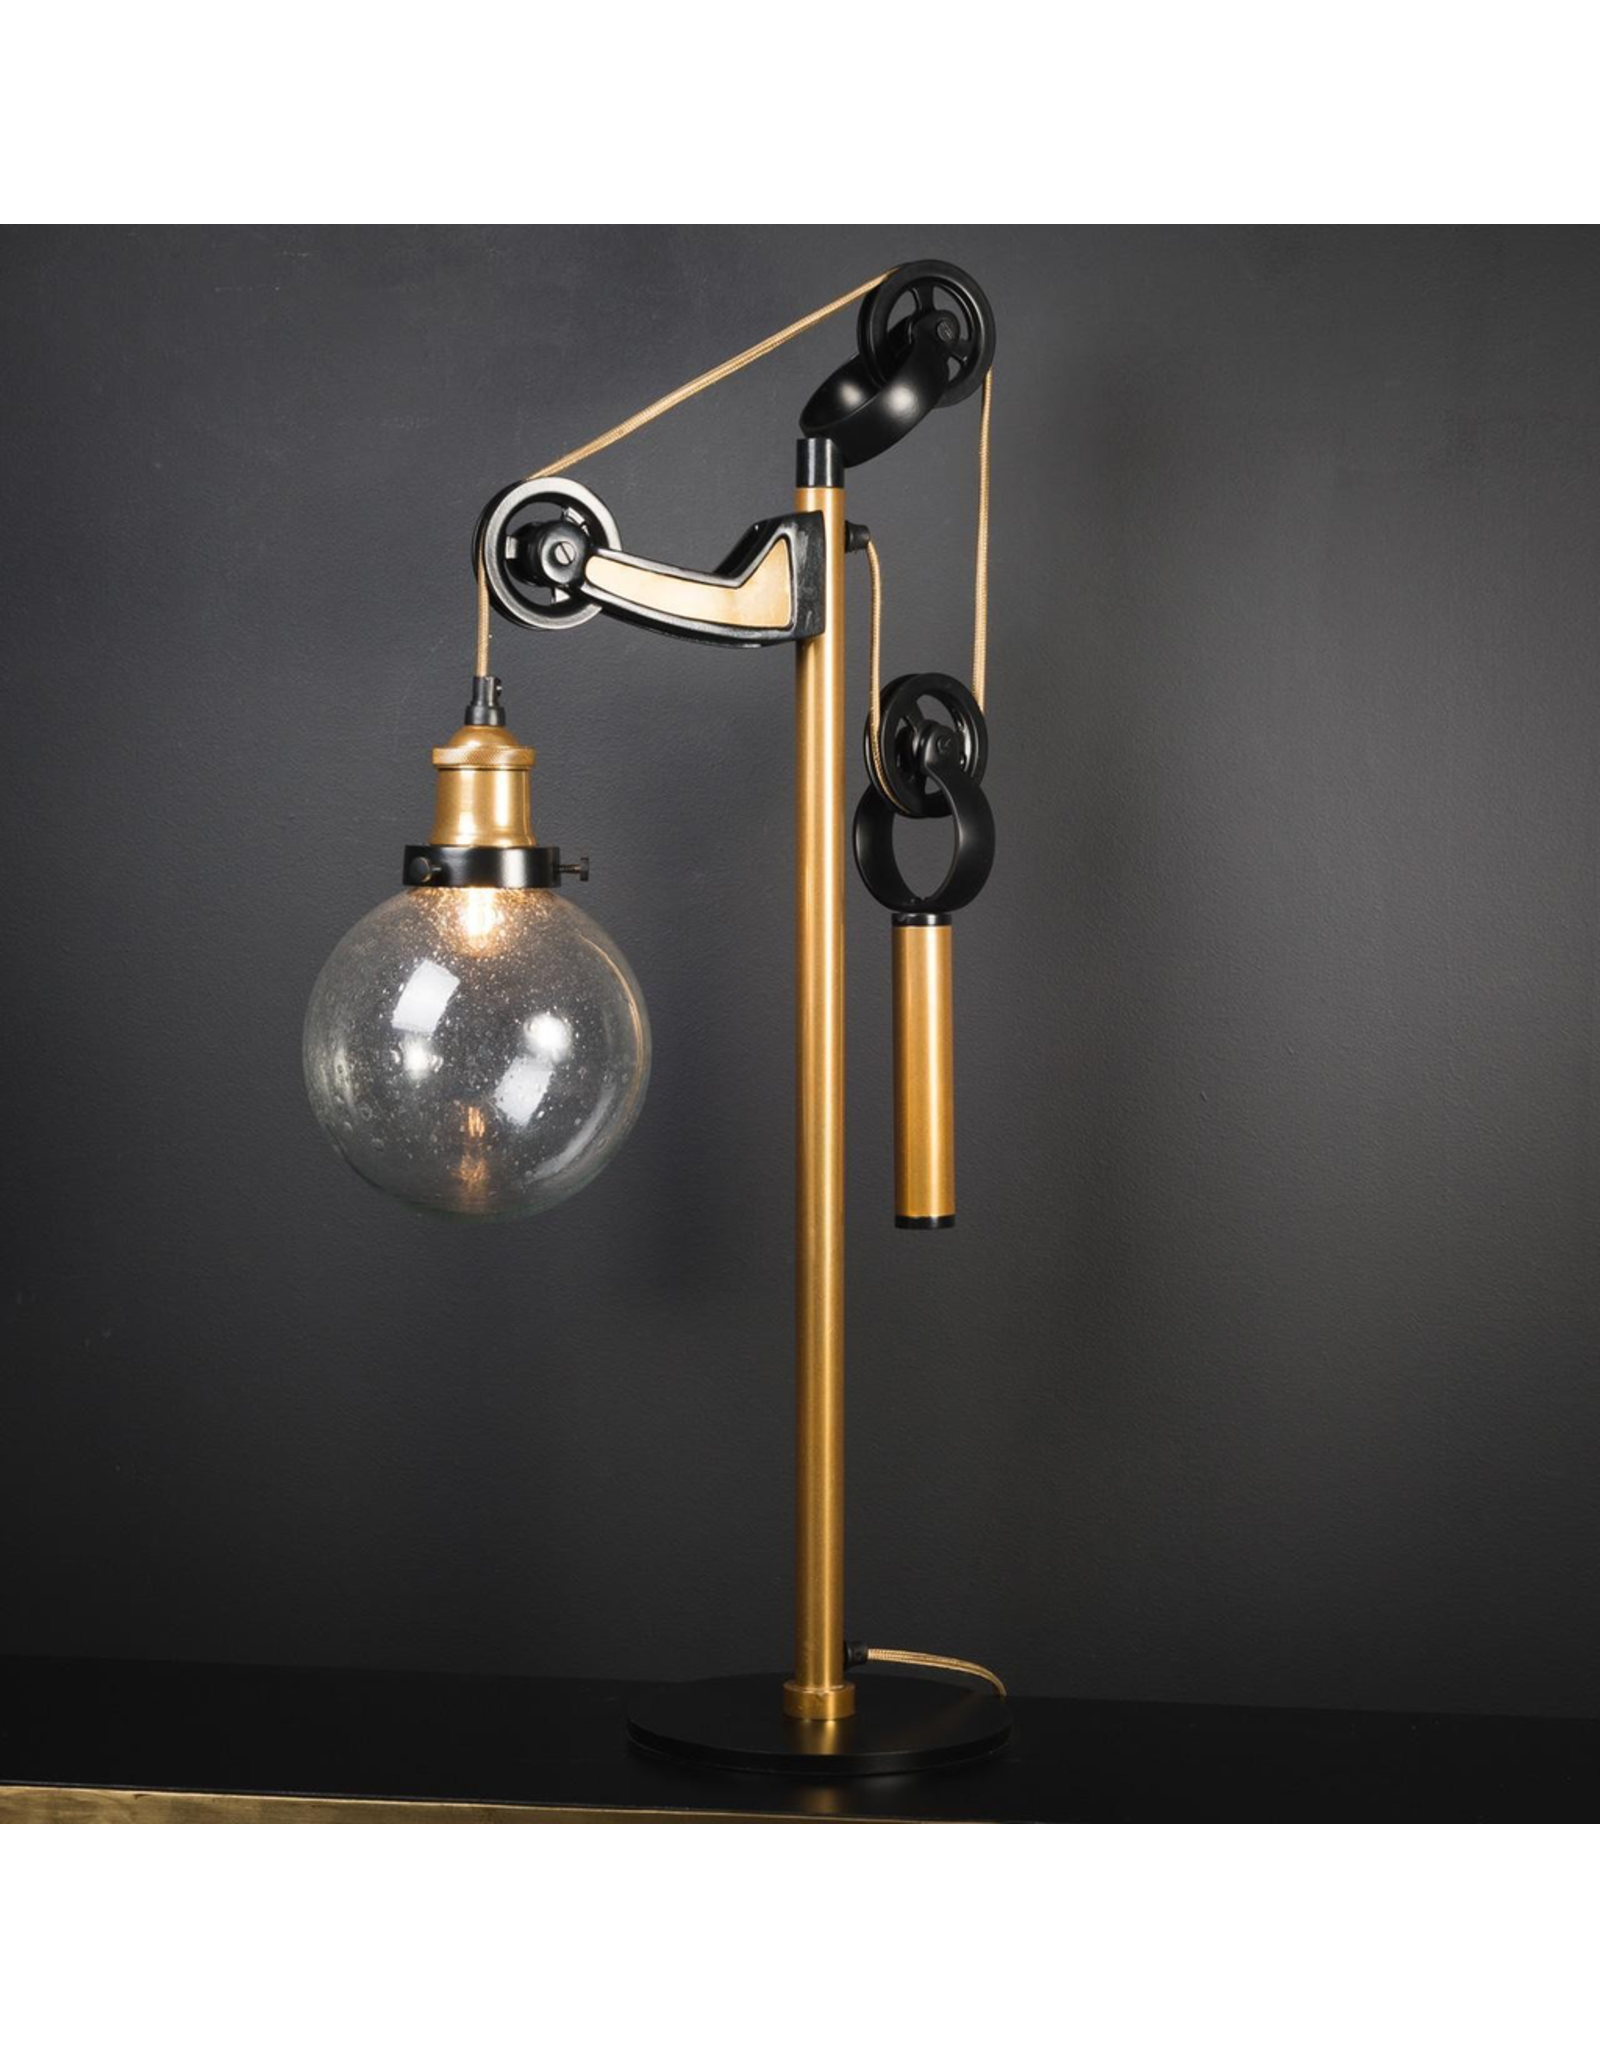 OBJET DE CURIOSITE DESK LAMP WITH COUNTERWEIGHT, BRASS AND BLACK